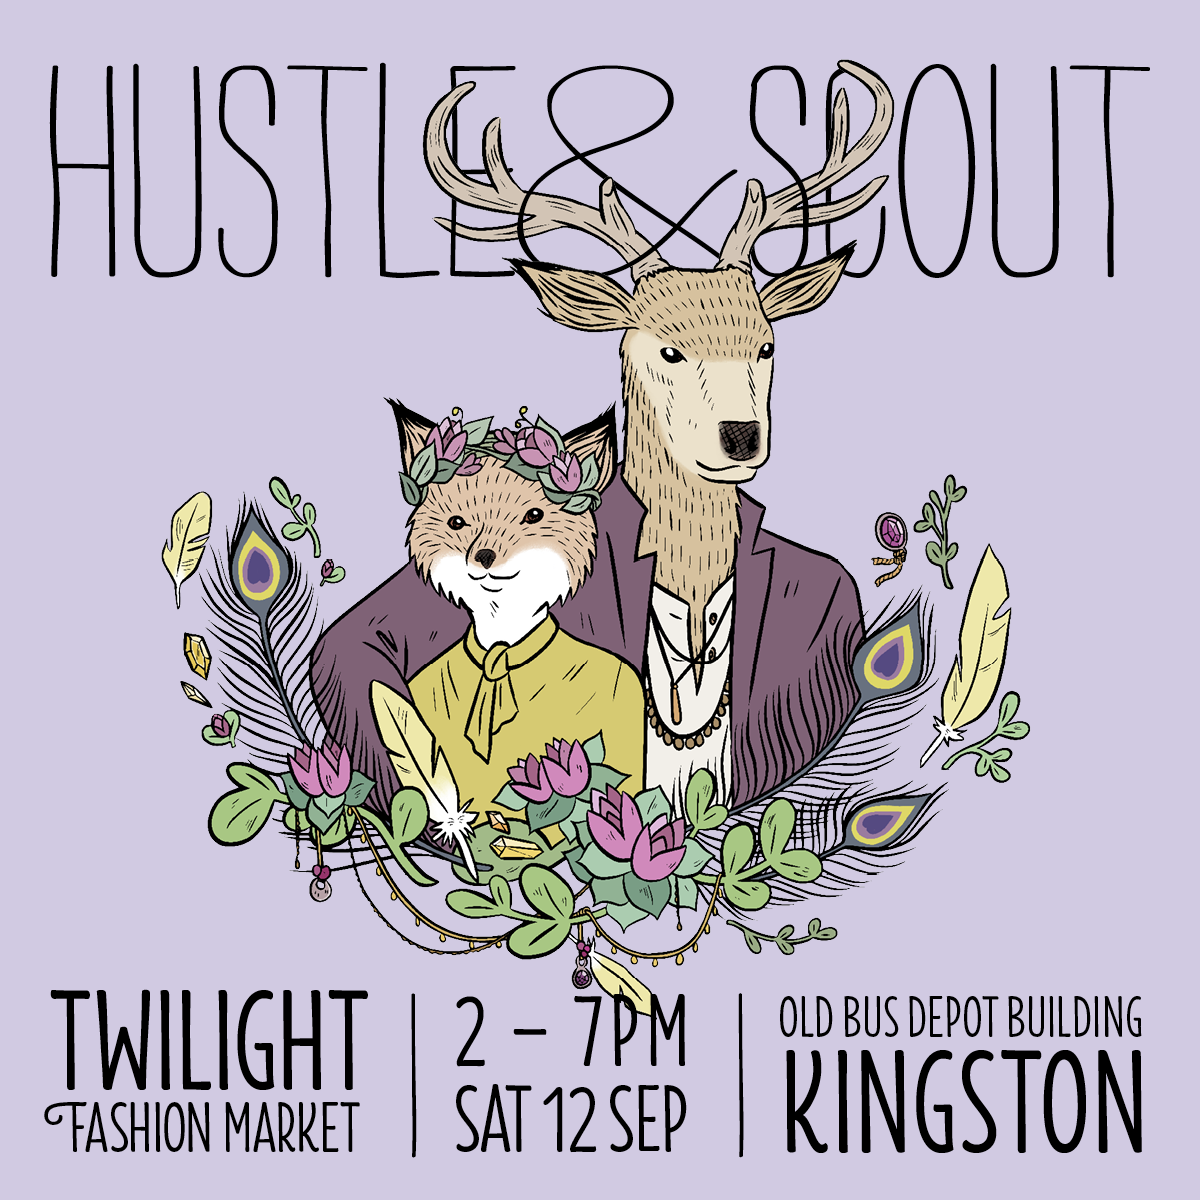 Hustle & Scout Twilight Market